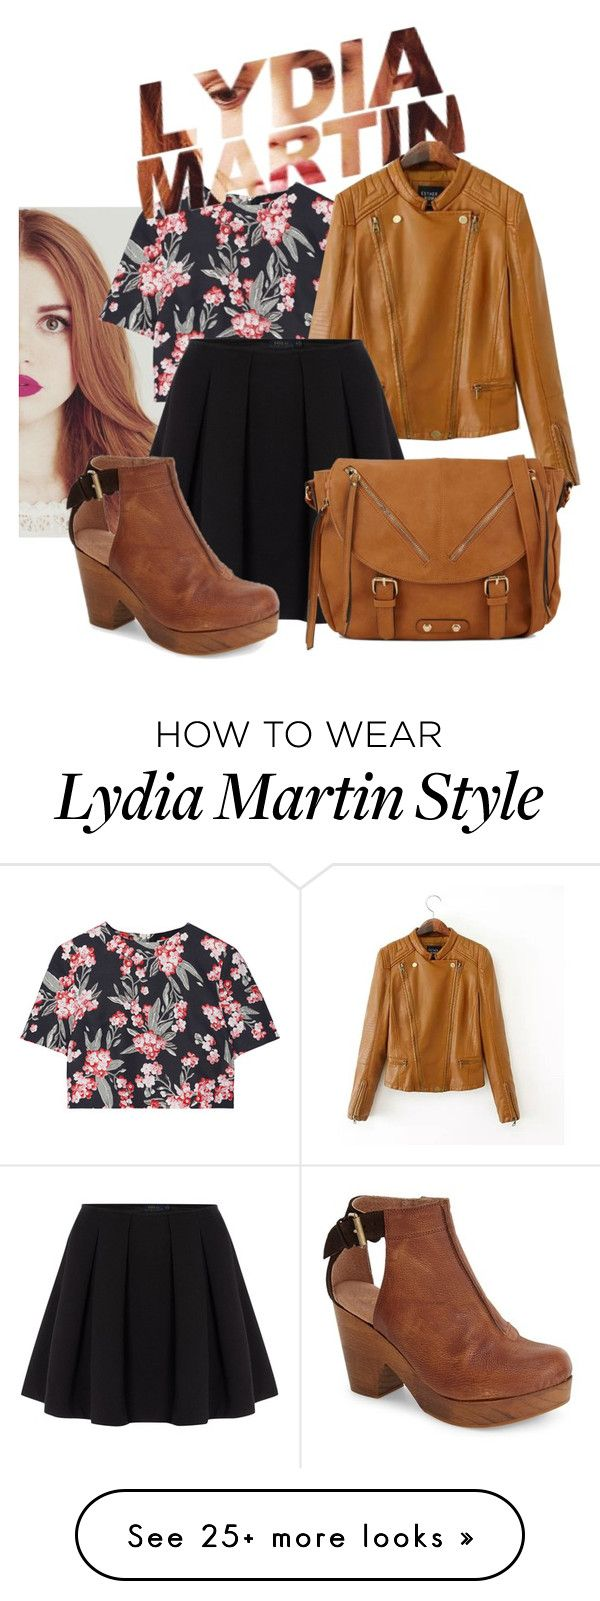 """Lydia Martin inspired look"" by africaouass on Polyvore featuring Jonathan Saunders, Polo Ralph Lauren, Free People, Call it SPRING, women's clothing, women, female, woman, misses and juniors"